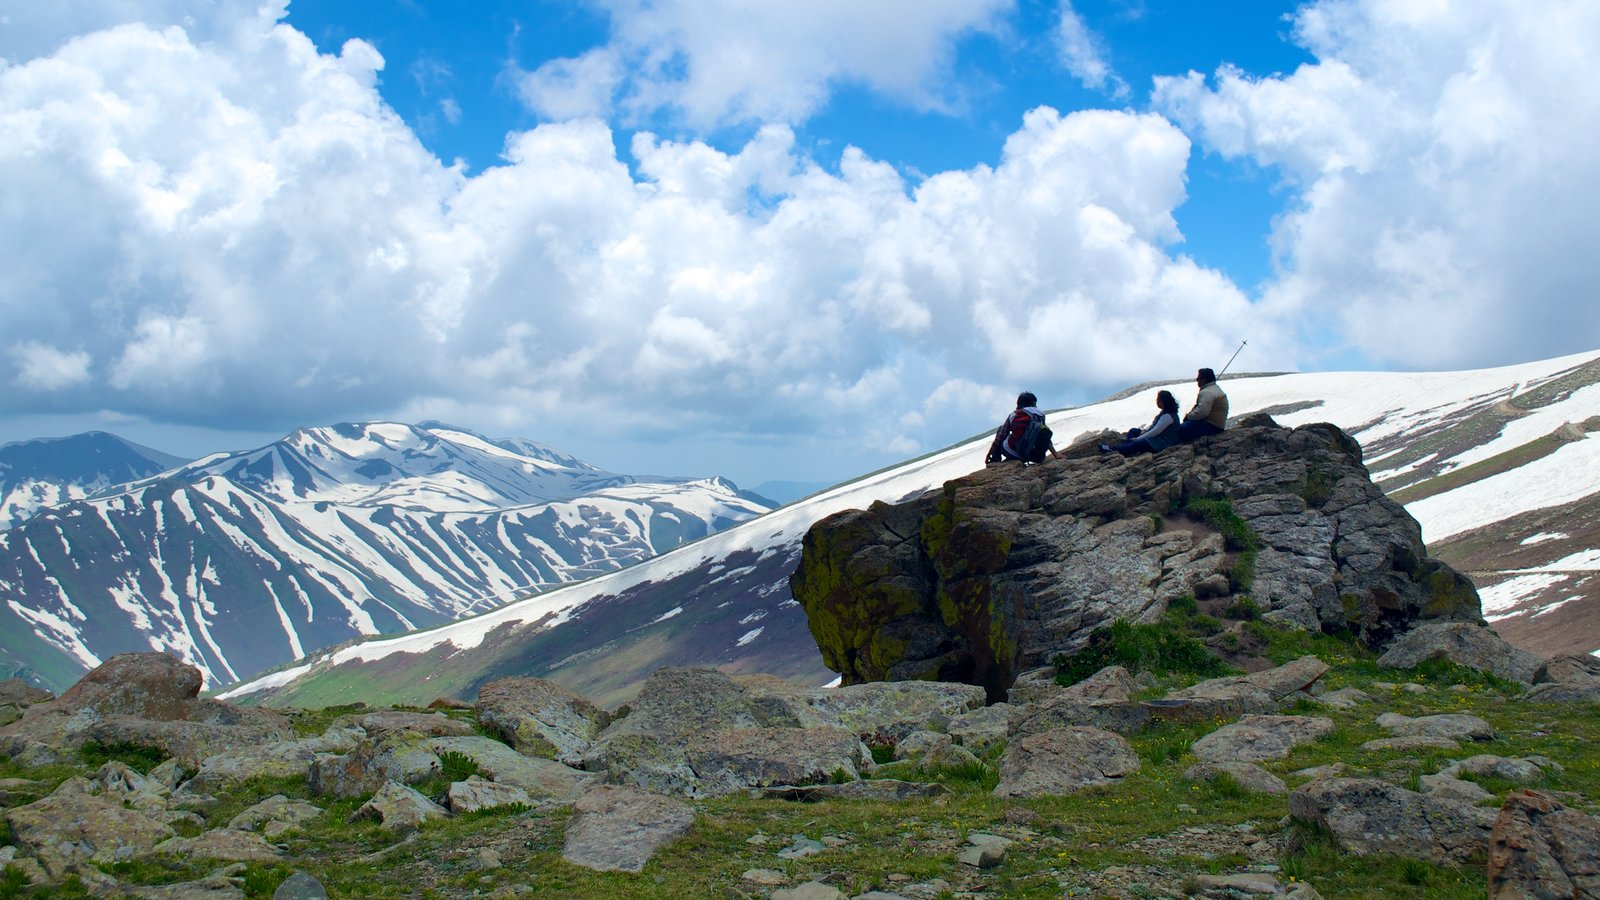 Gulmarg showing hiking or walking, snow and mountains